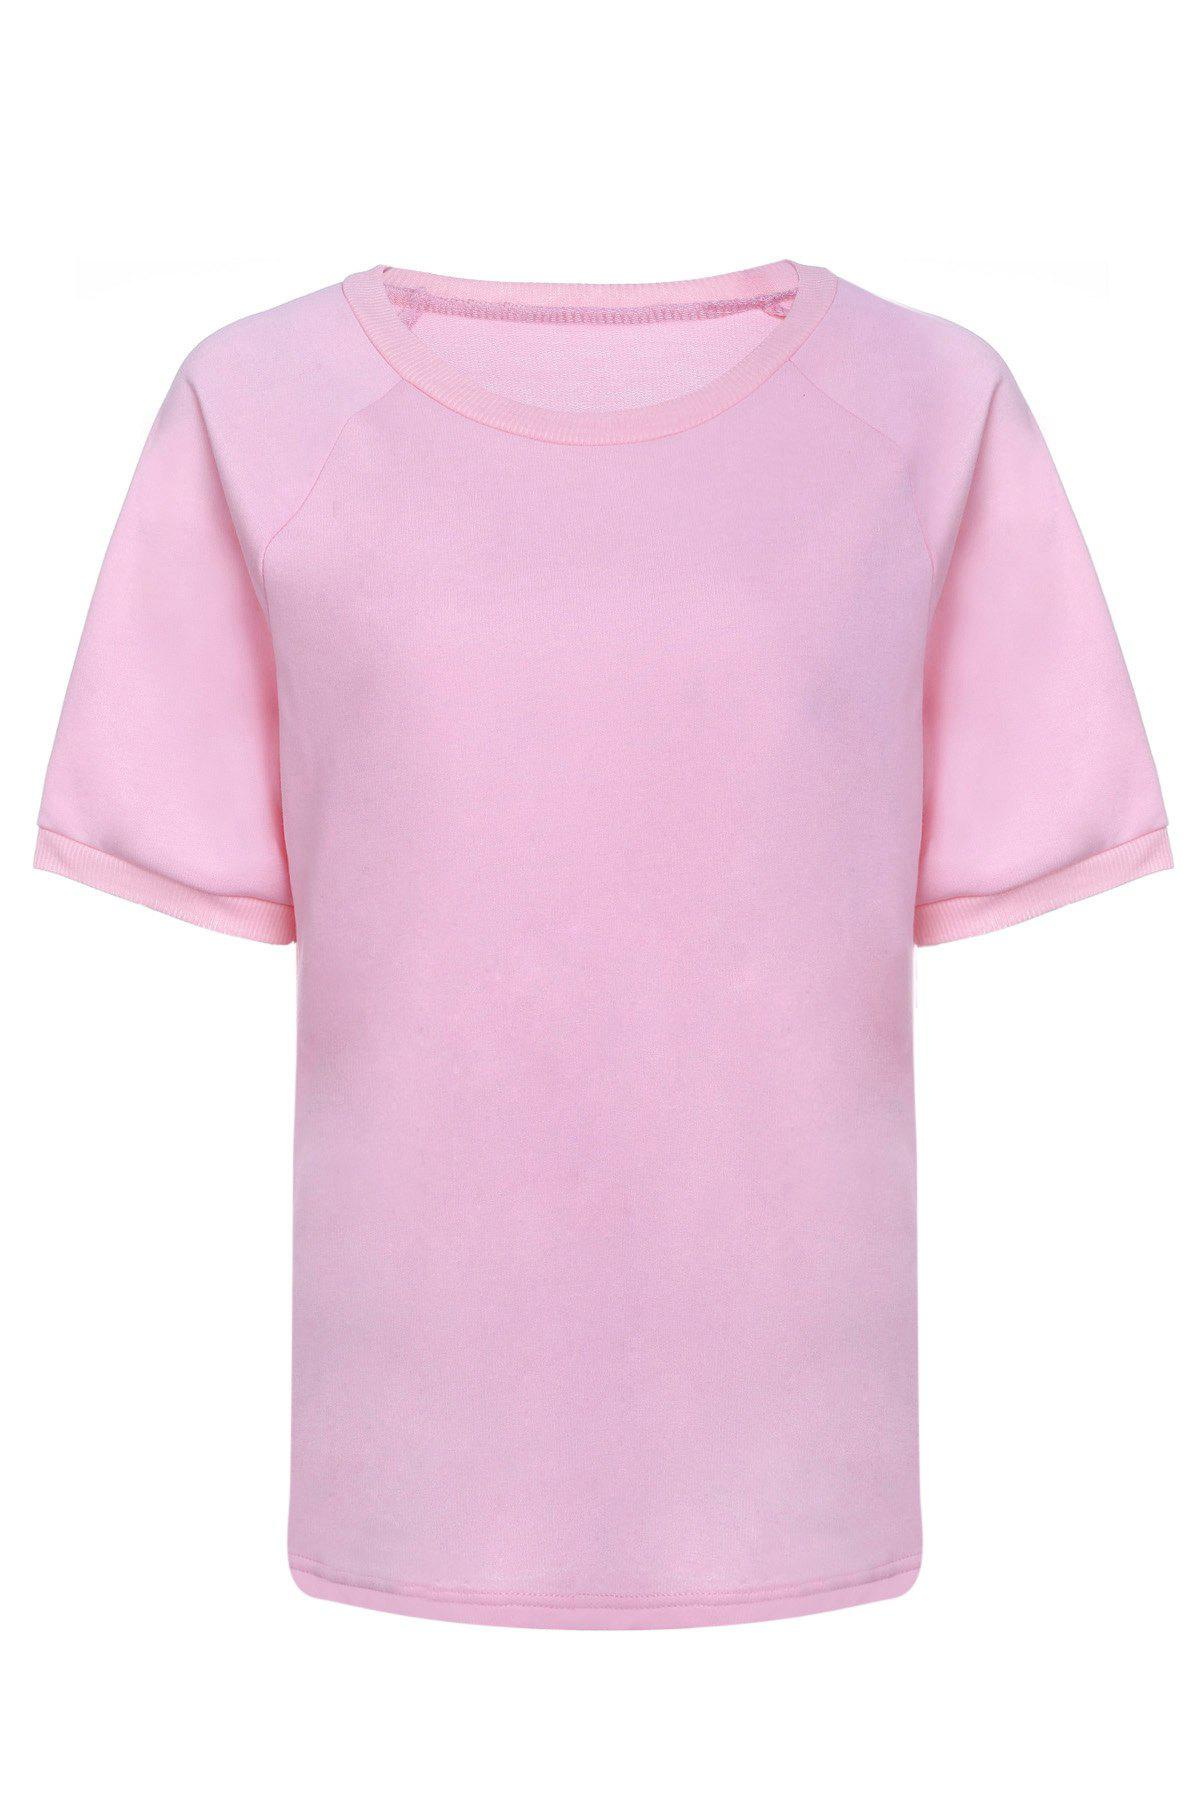 Fashionable Women's Round Neck Short Sleeve T-Shirt - PINK S